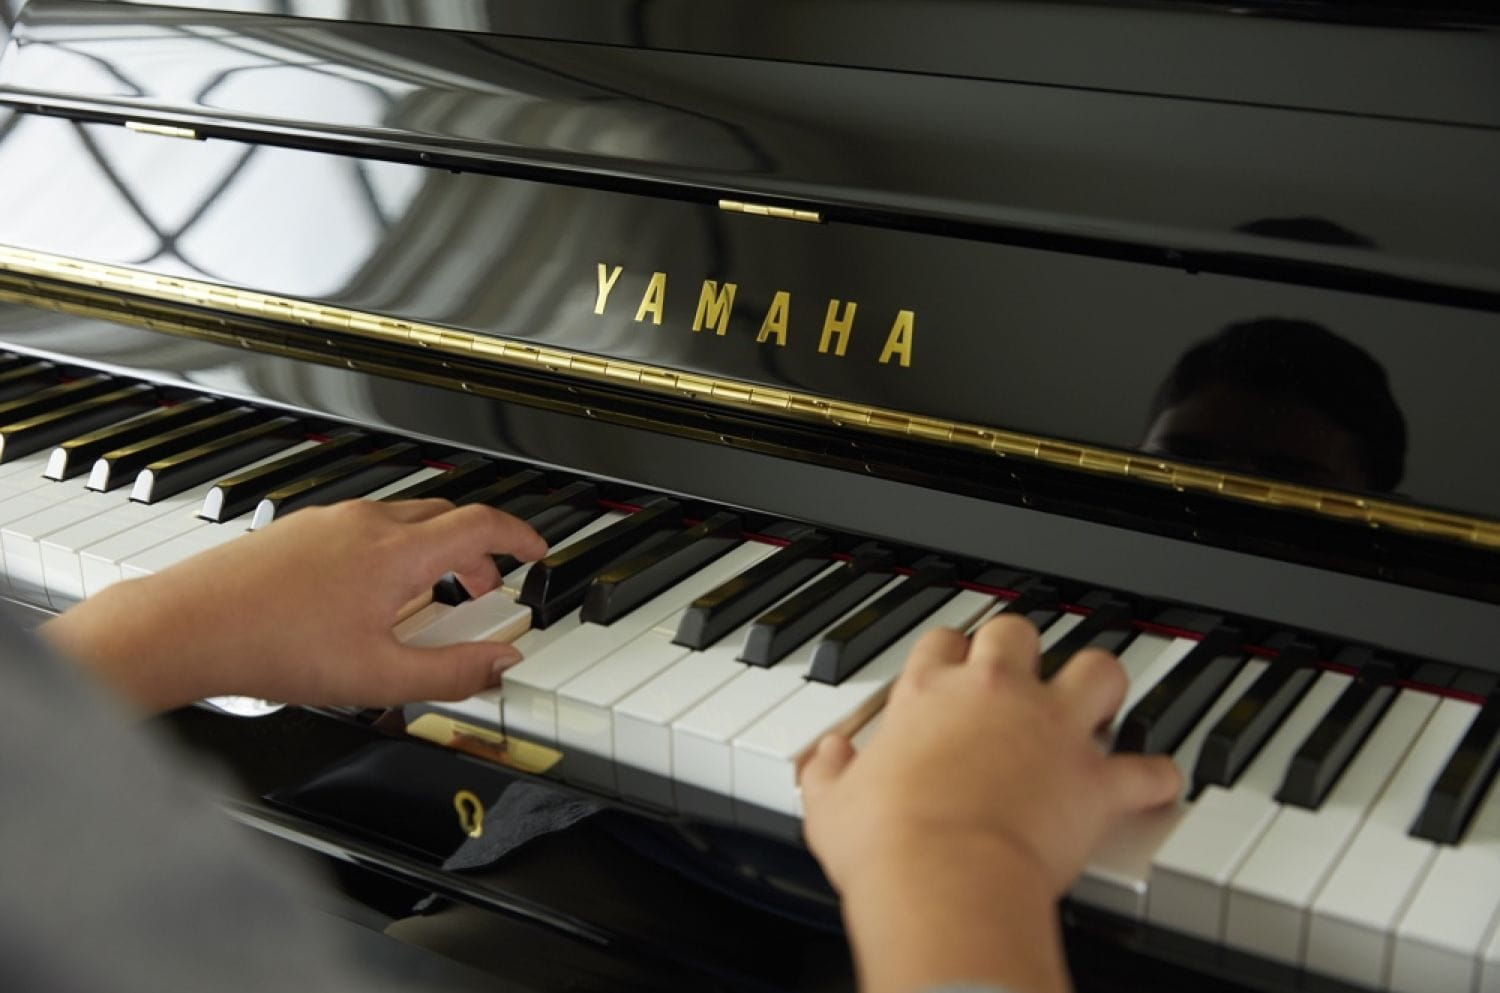 Child's hands playing a Yamaha upright piano.